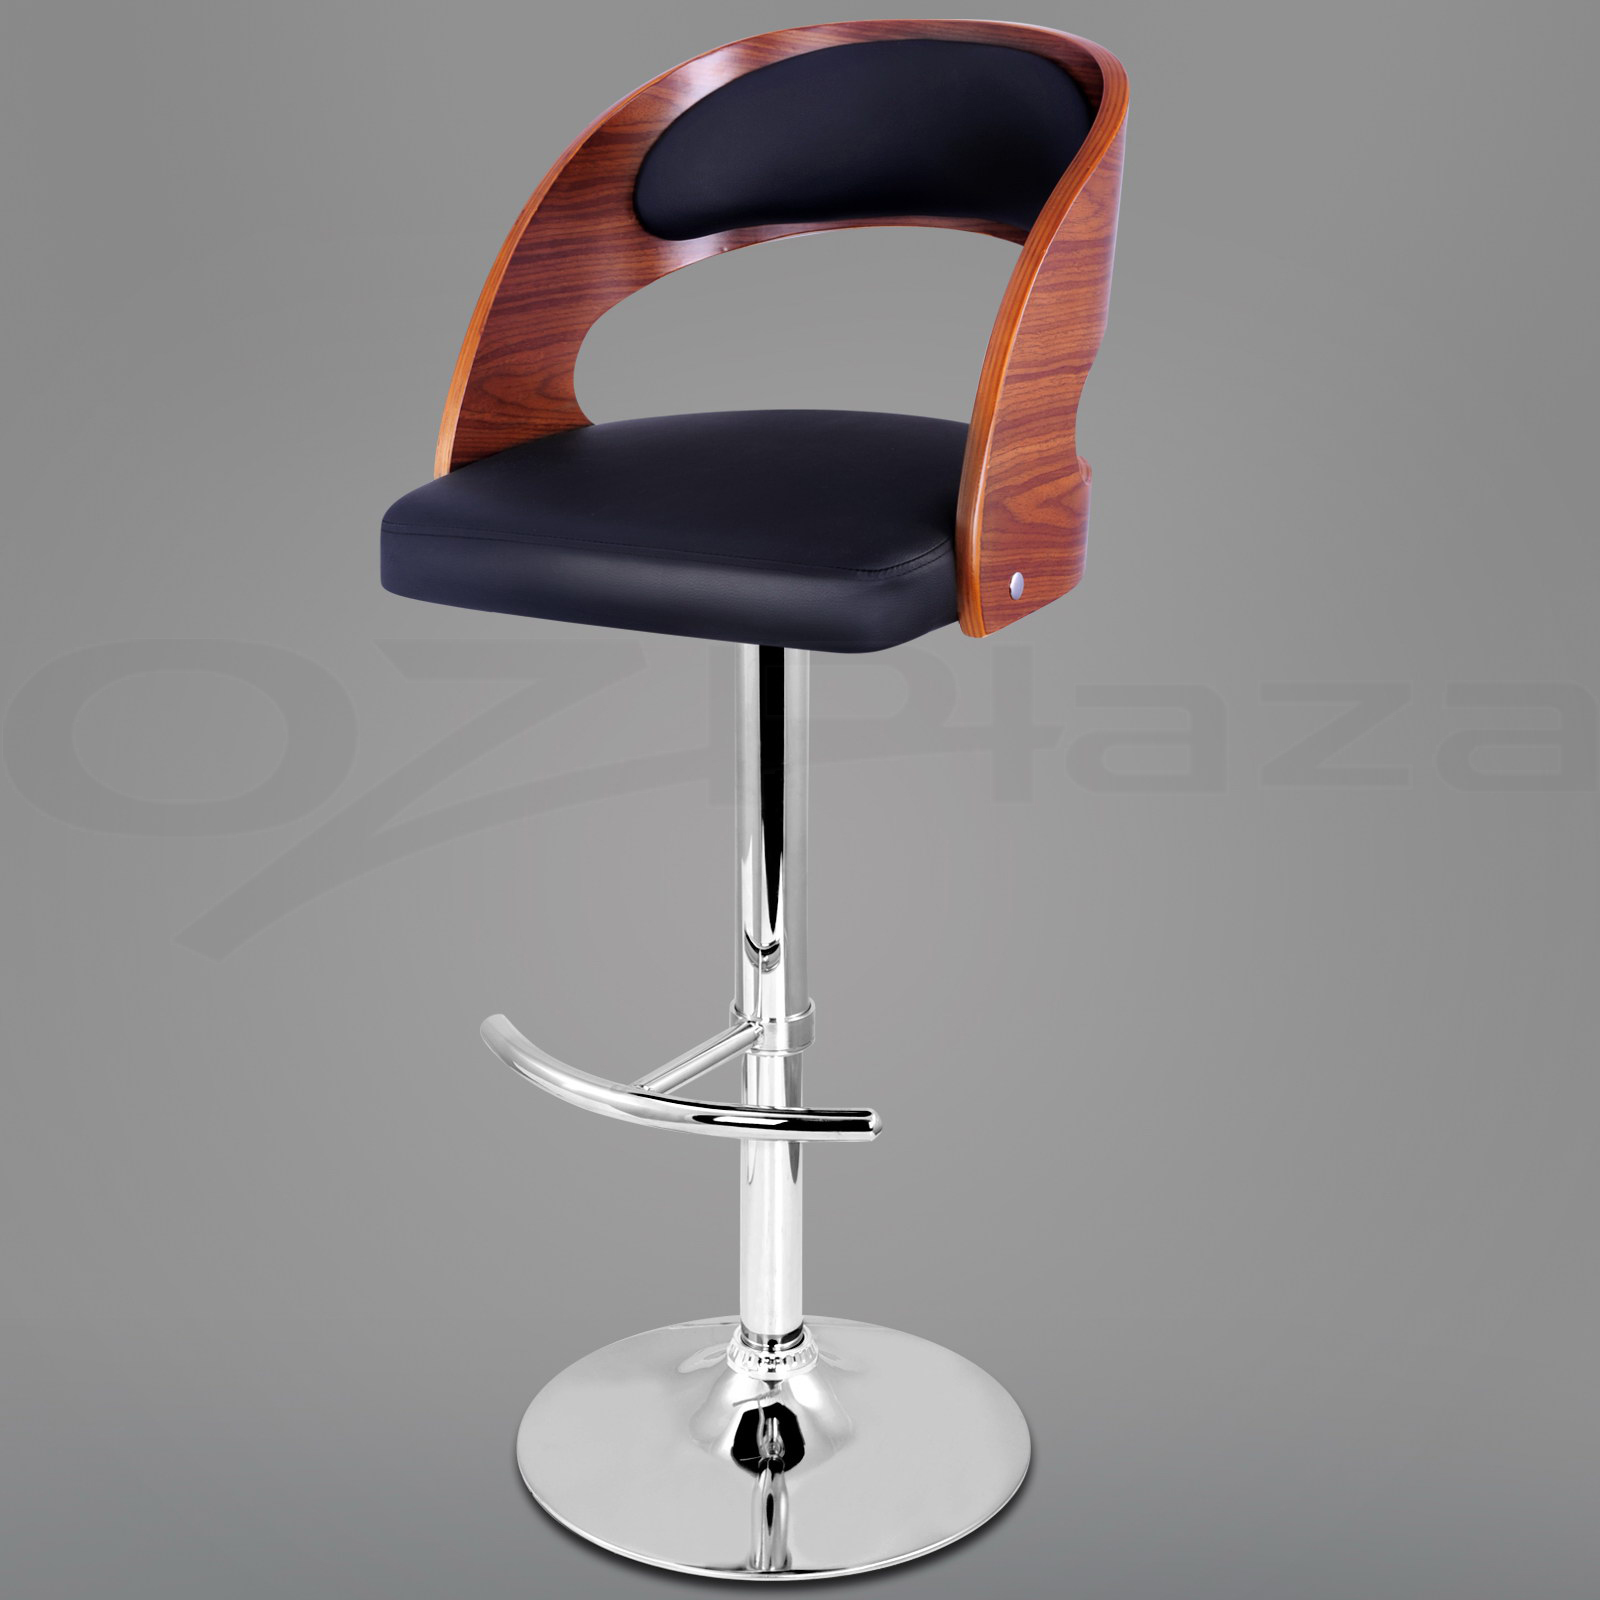 Wooden Bar Stool Barstool Kitchen Dining Chair Gas Lift